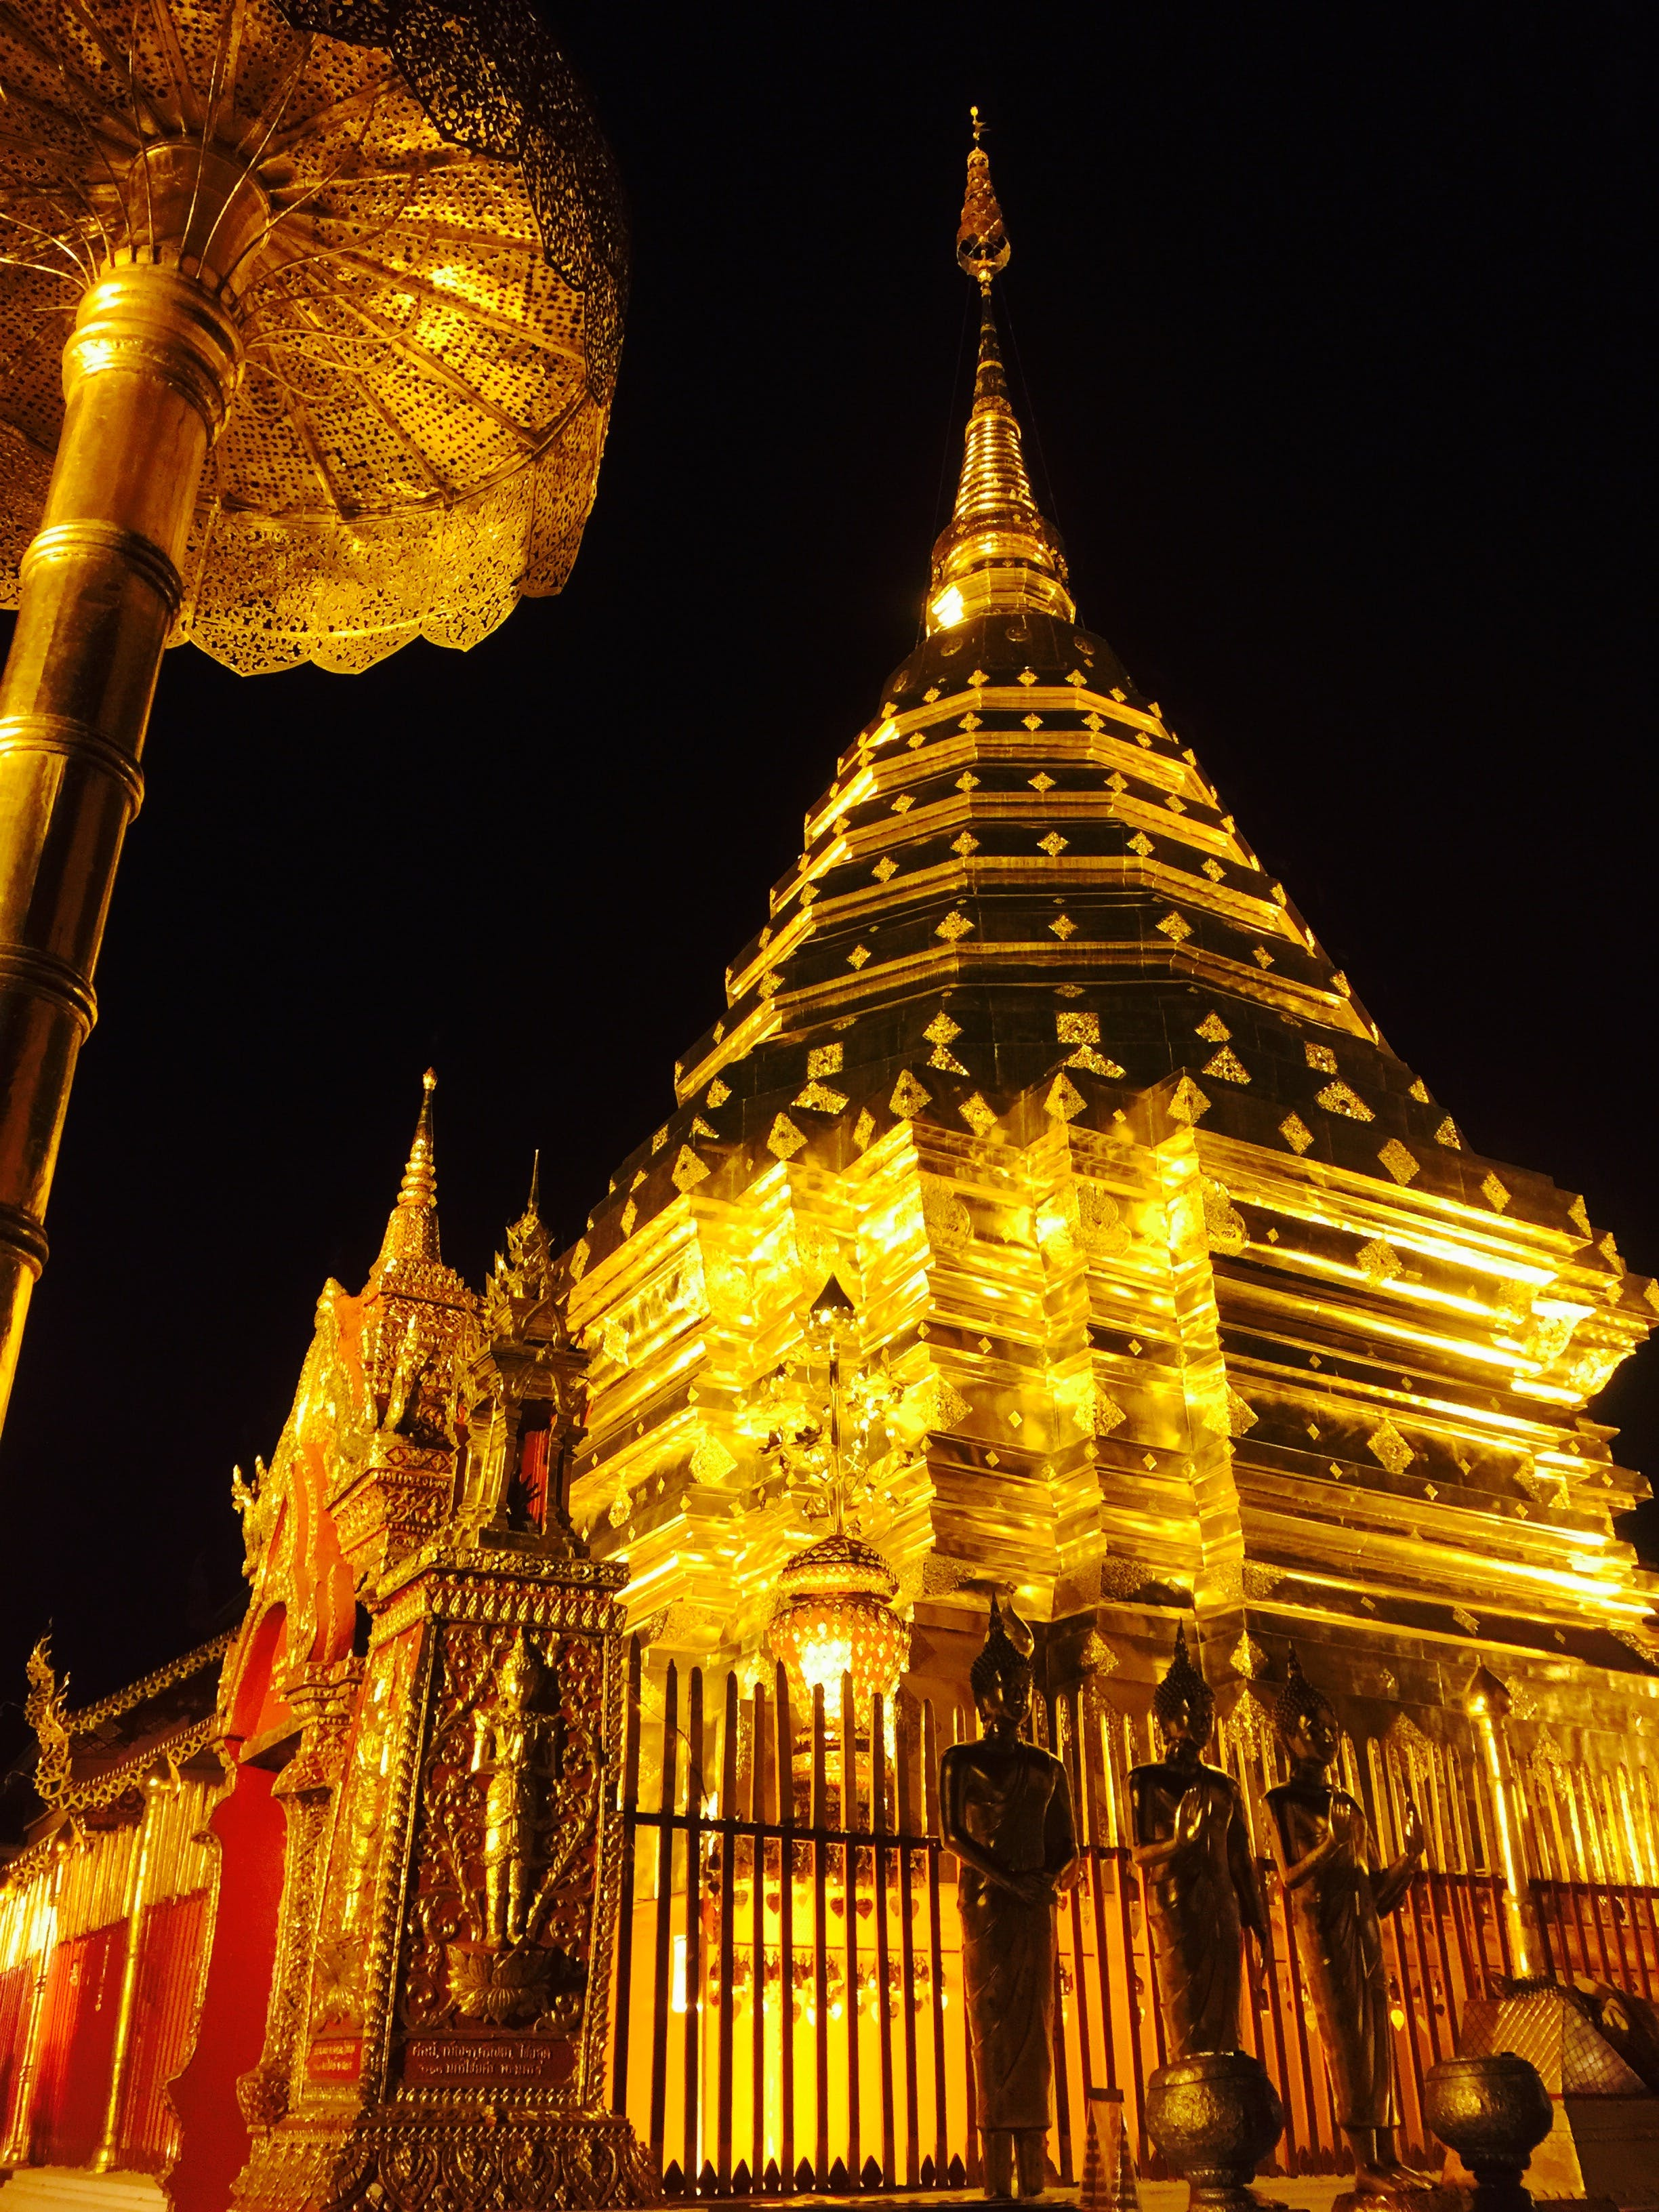 Low Angle View of Temple at Night